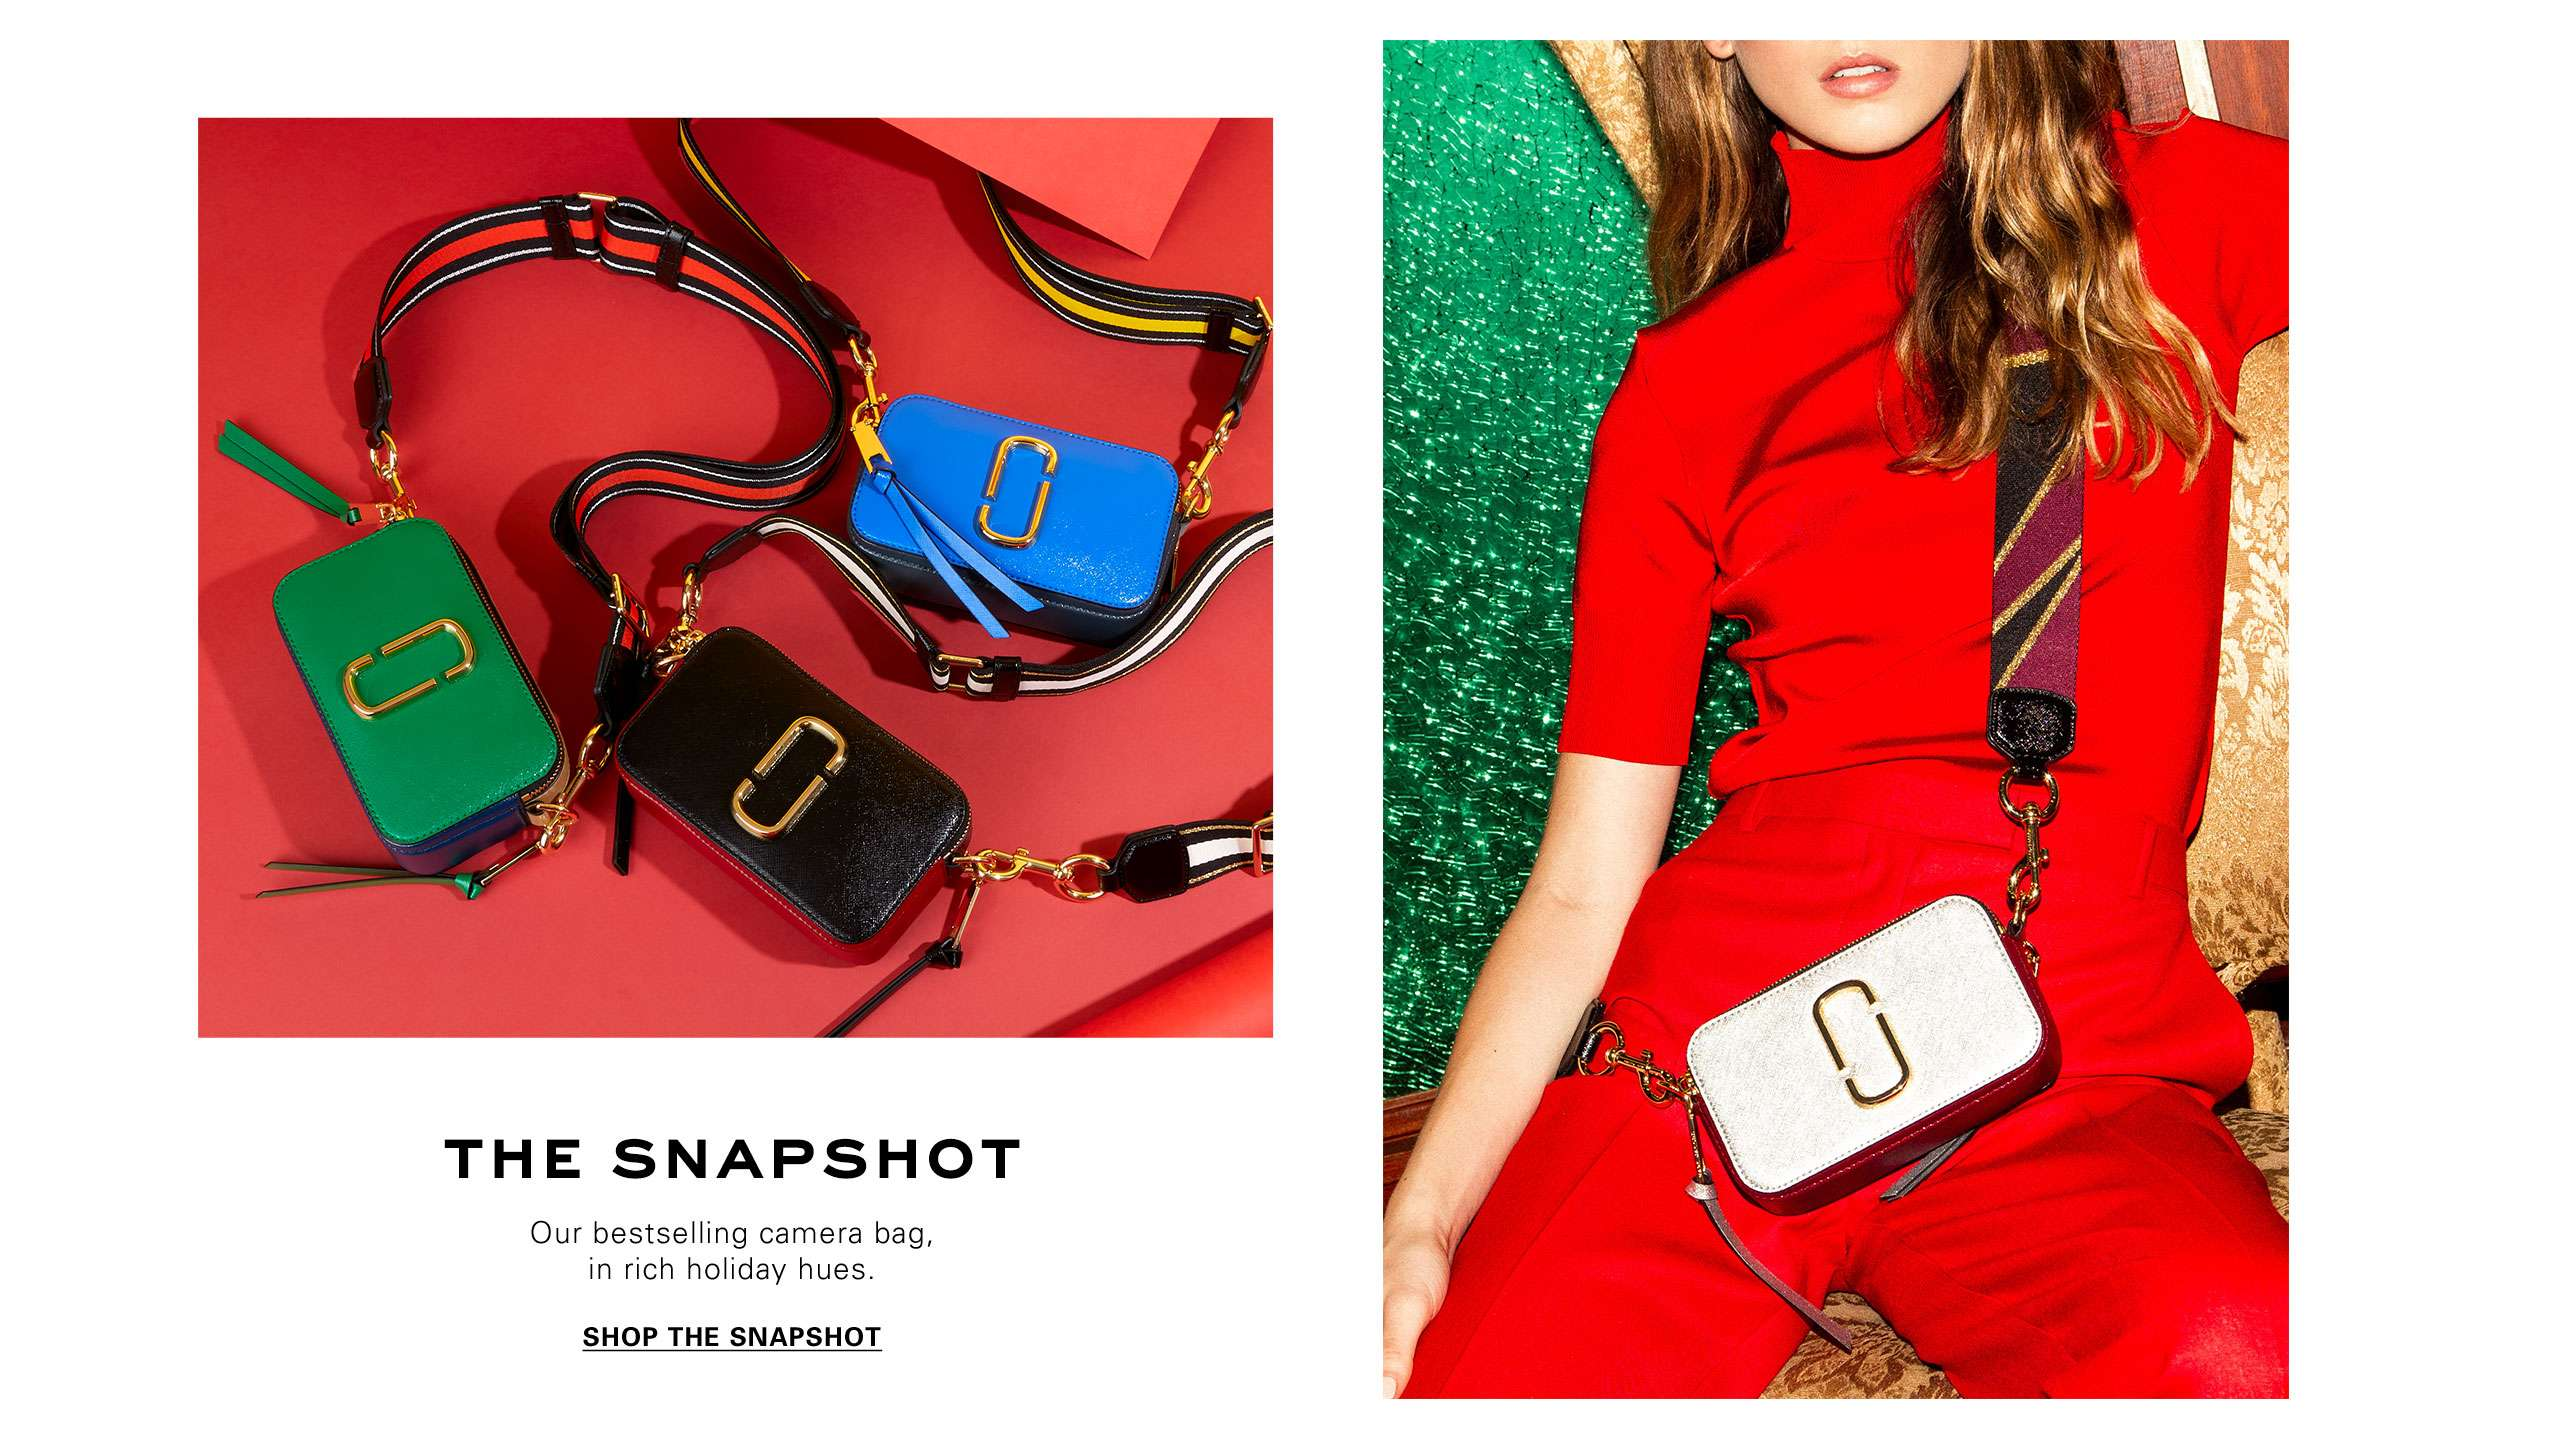 Marc Jacobs Official Site Sepatu Boot Wanita Rc316 The Holiday Bag Guide Snapshot